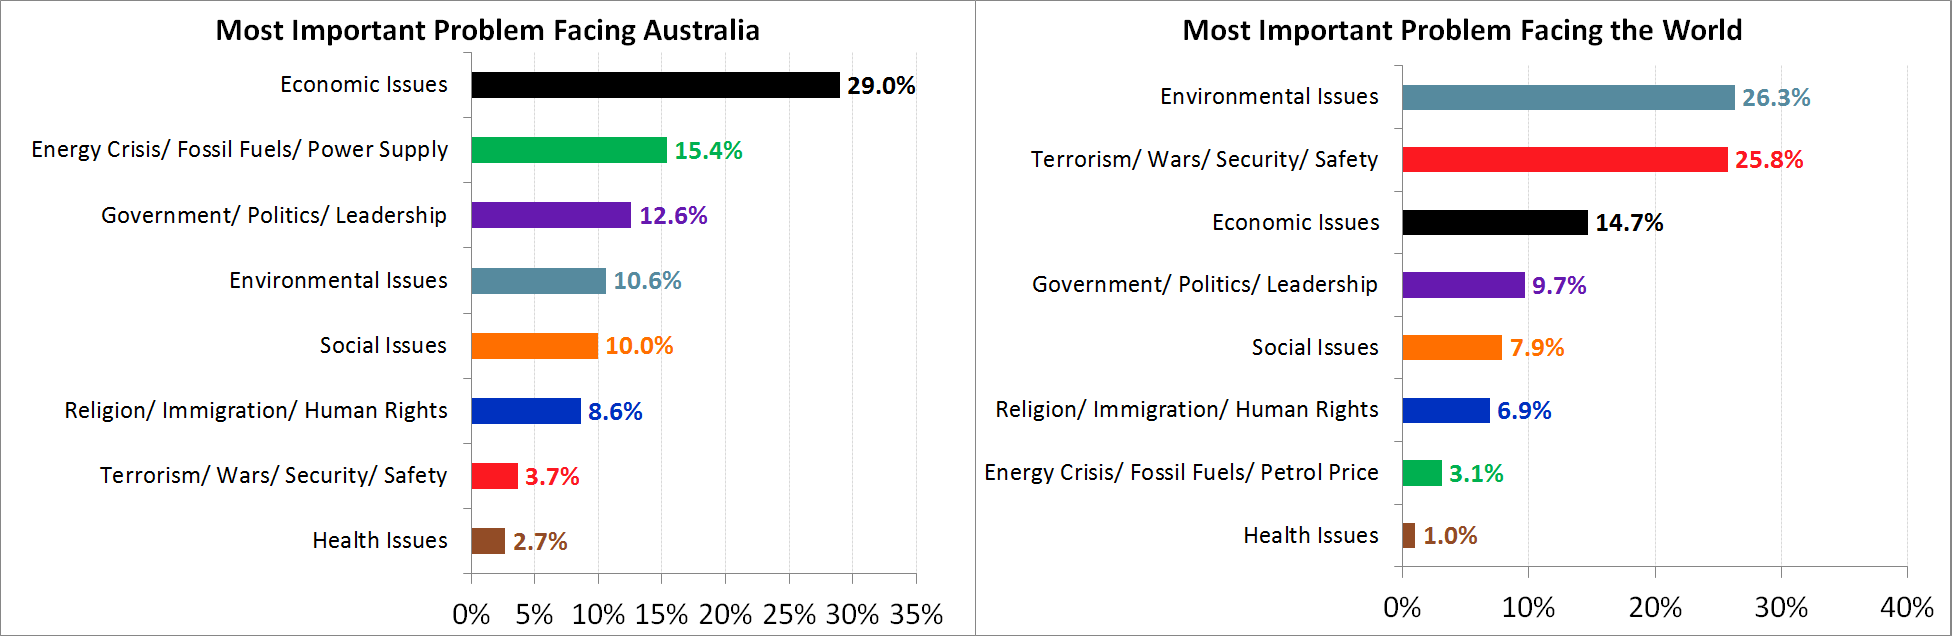 Most Important Problems Facing Australia and the World - October 2017 - By Category